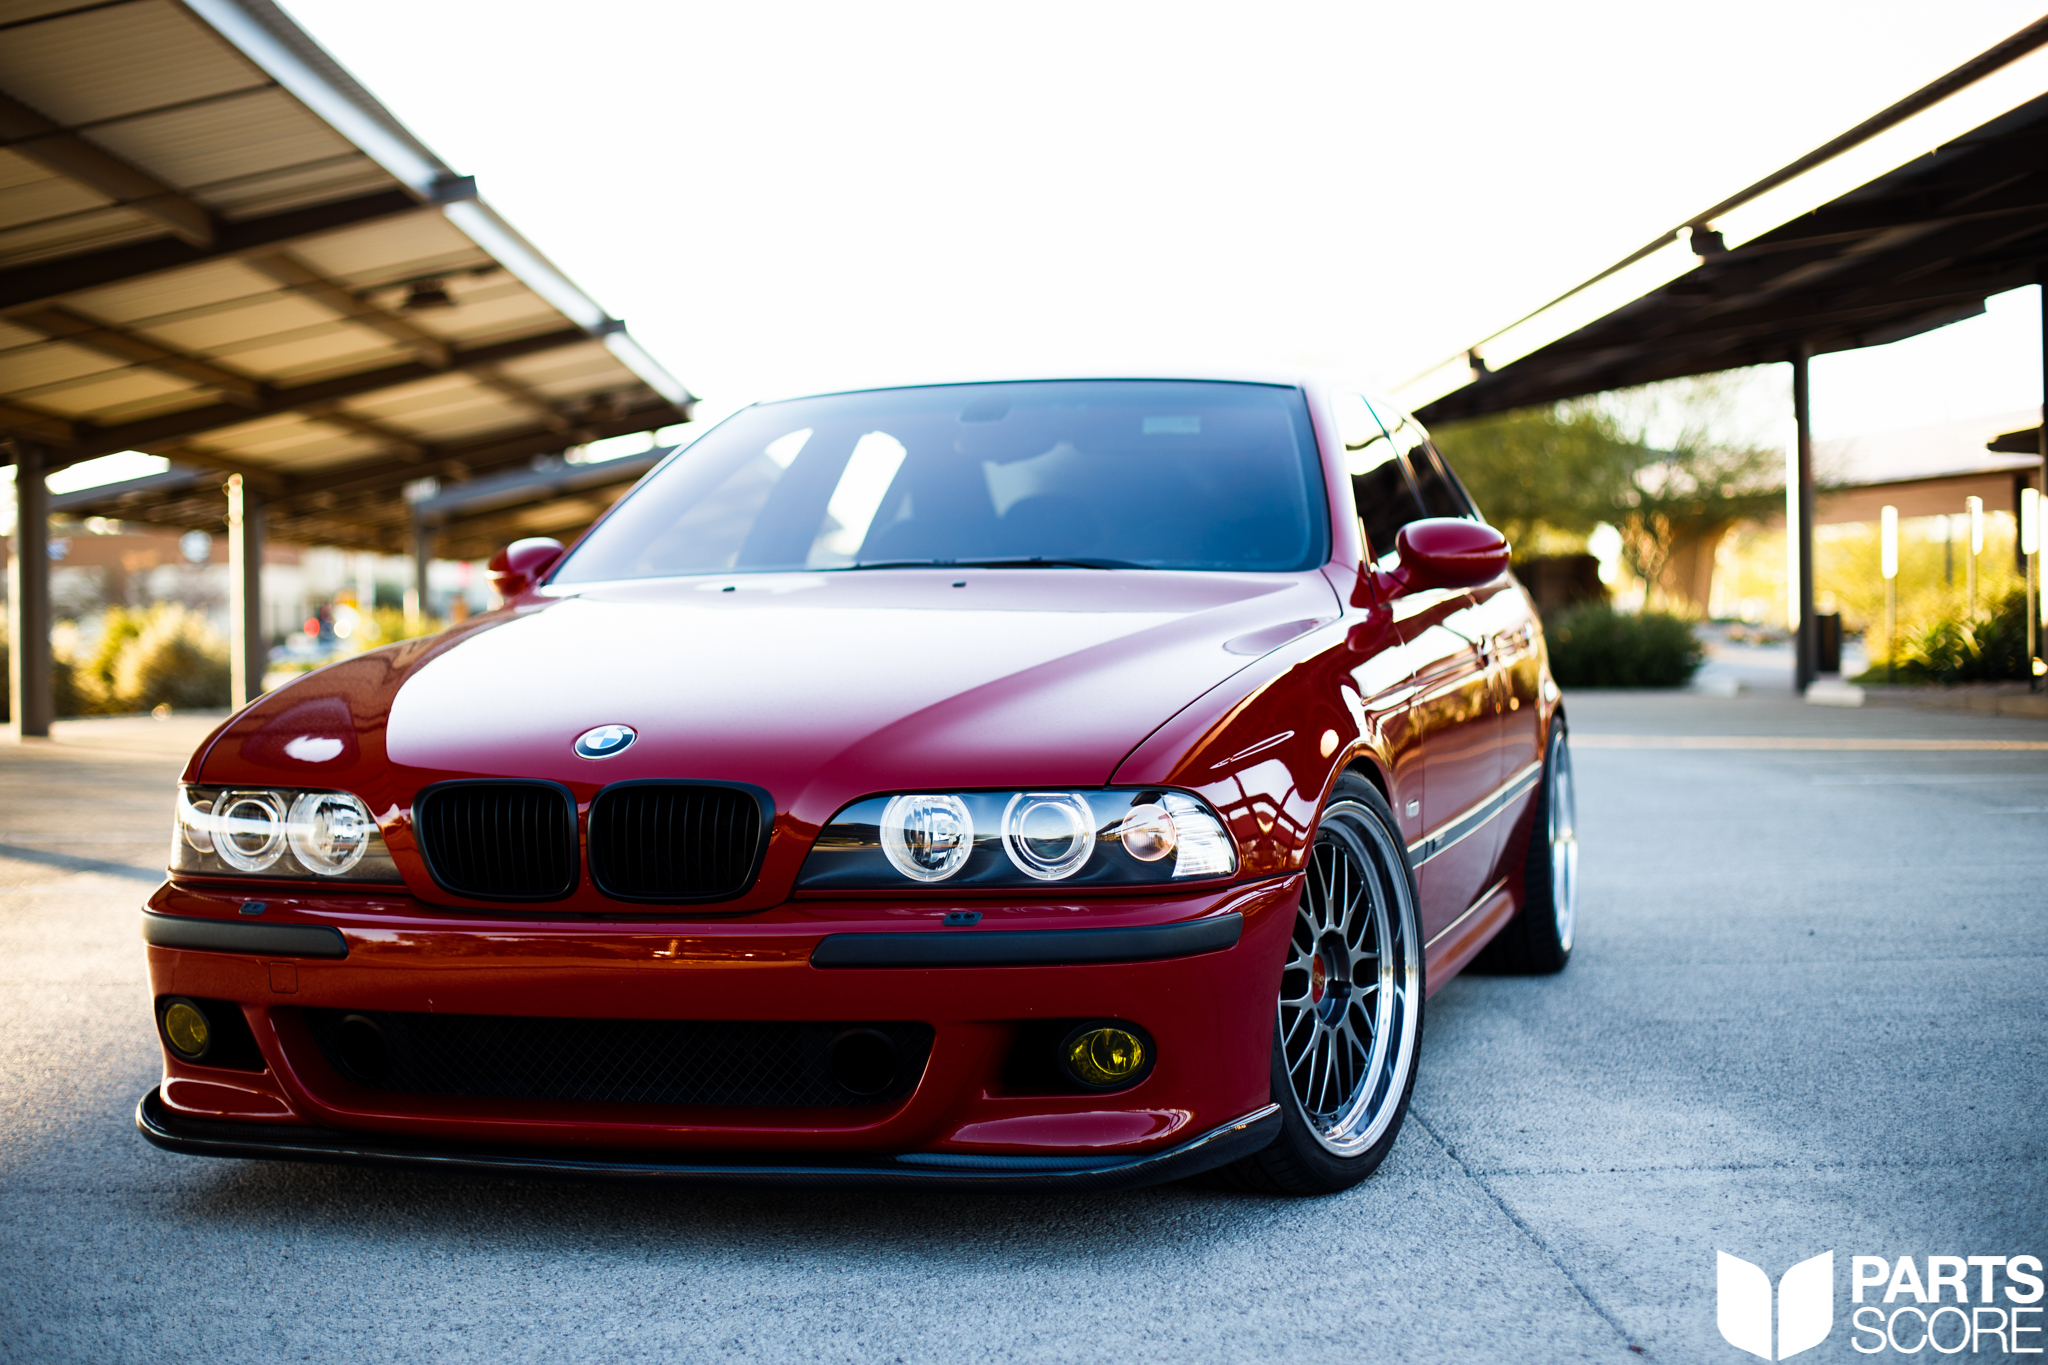 Parts score, partsscore, e39, m5, e39m5, ess tuning, supercharged, e39 supercharged m5, supercharged m5, boost, ludicrous speed, evolve, evolve long tube, kw v3, super sprint, bbs lm, brembo, spec, bmw m, bmw m performance, bmw m power, v8, long tube headers, supercharged v8, boosted, scottsdale, az, arizona, scottsdale arizona